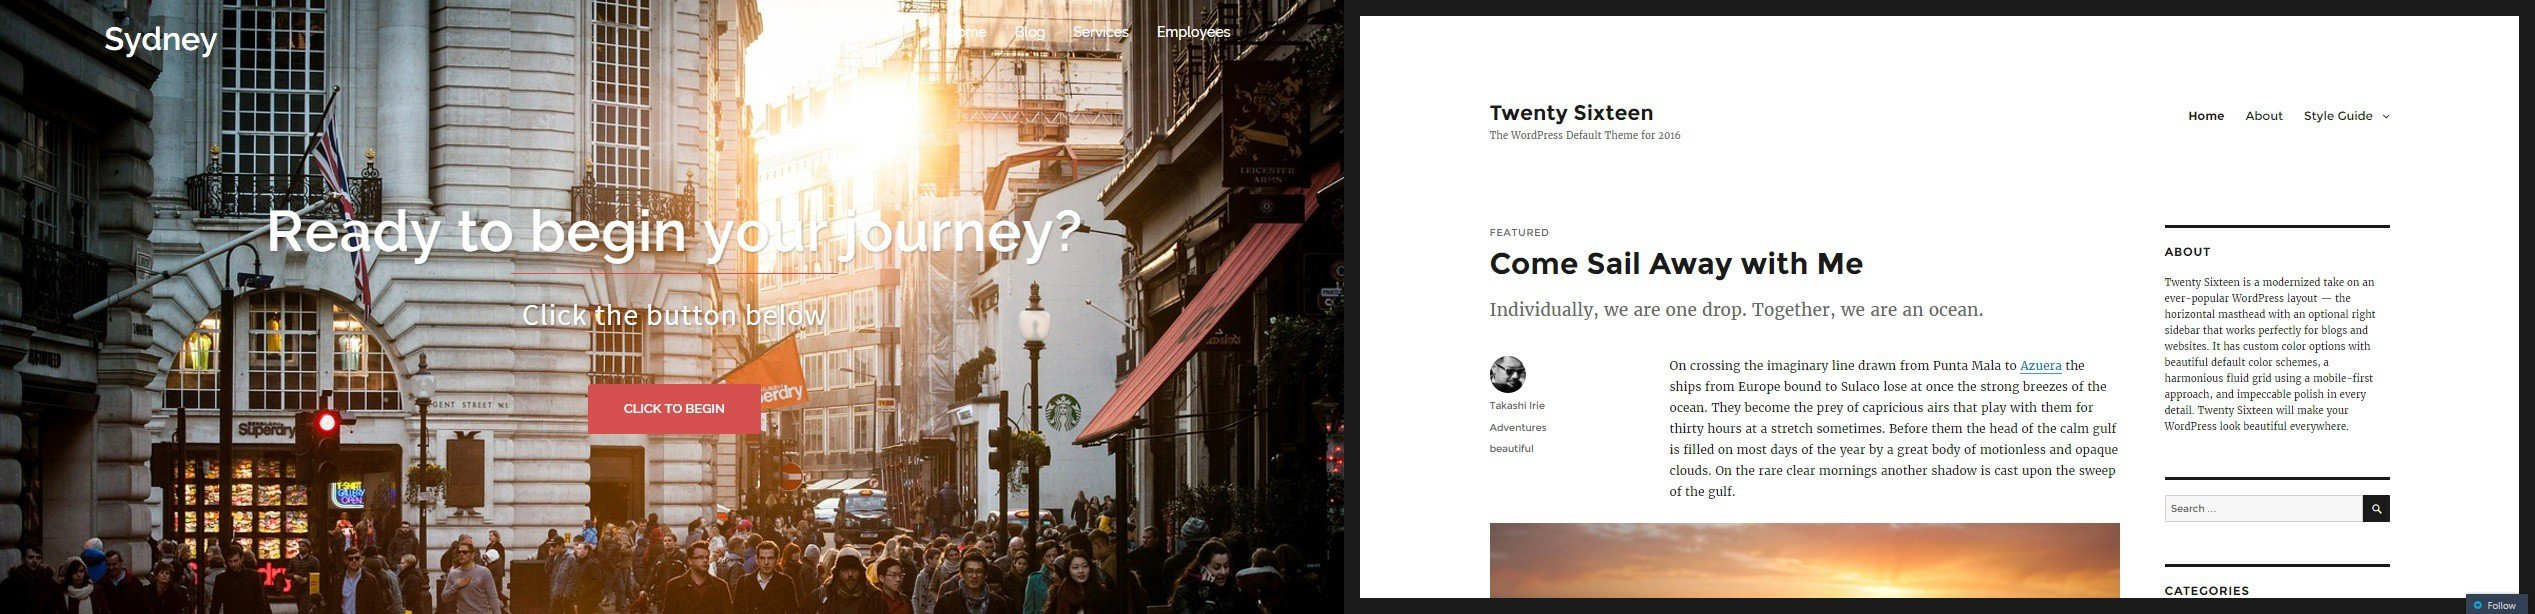 Sydney or Twenty Sixteen? Choose the theme that best fits your content.